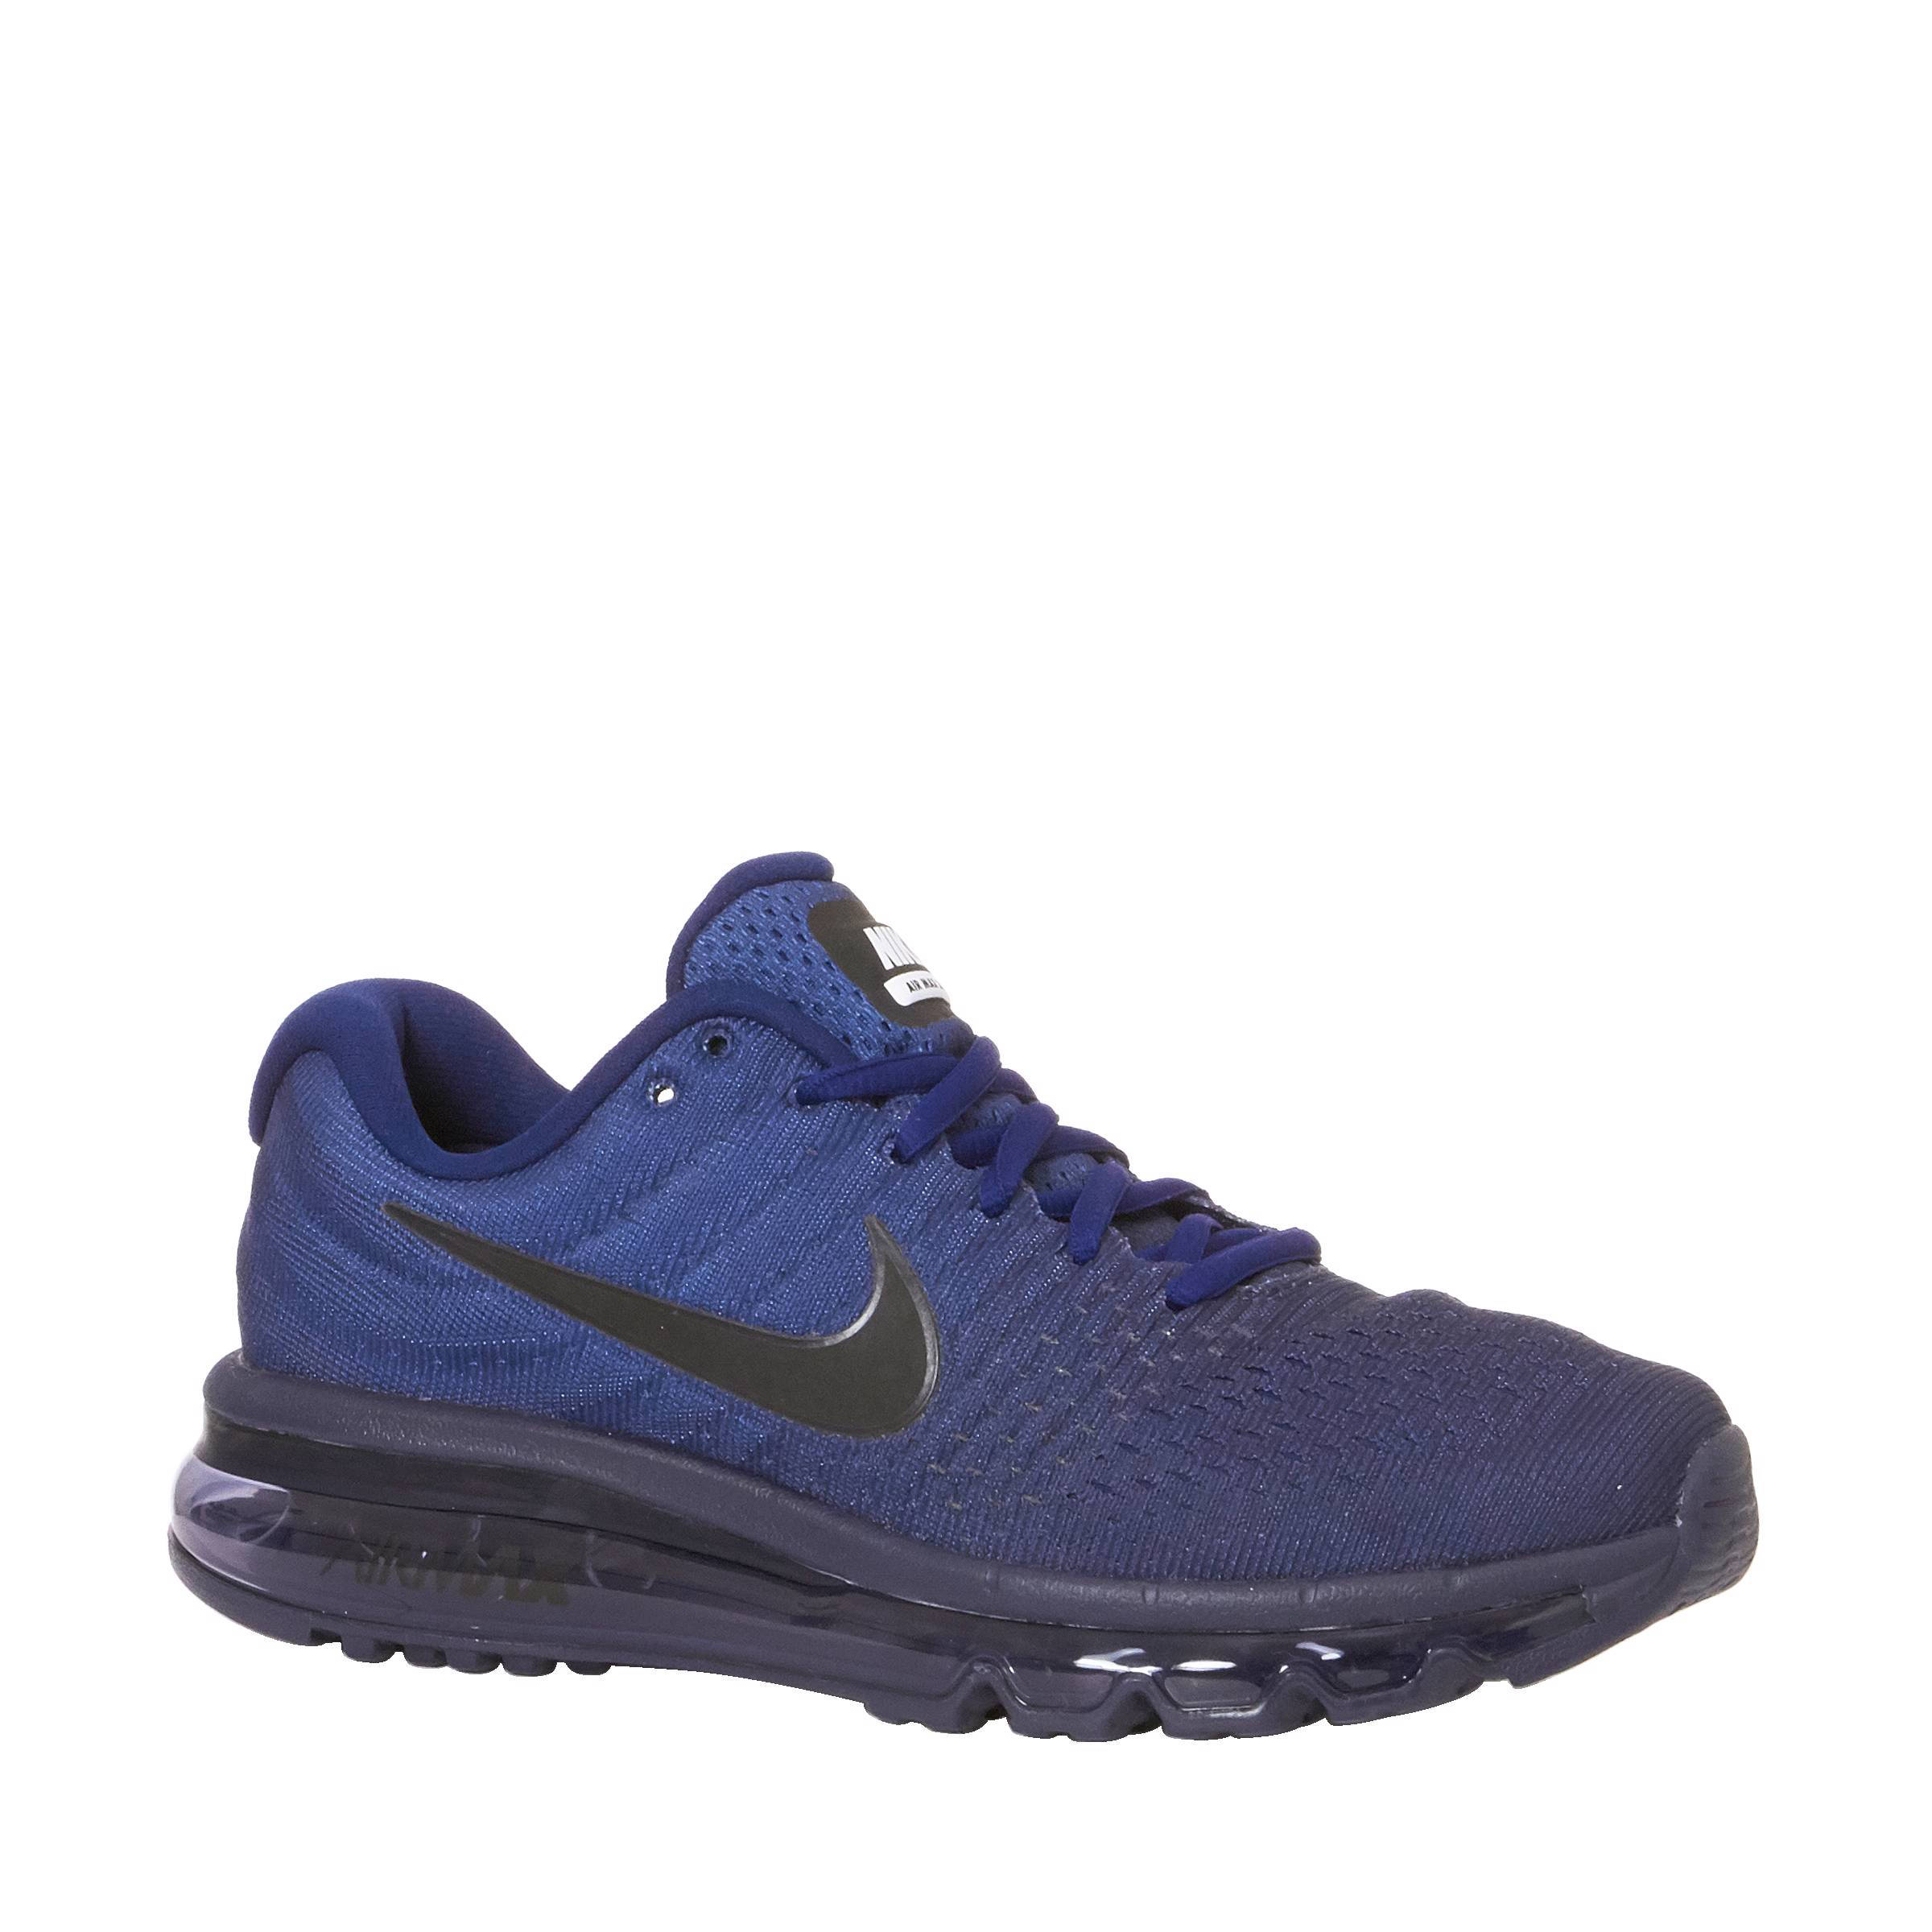 nike air max 2017 heren donkerblauw